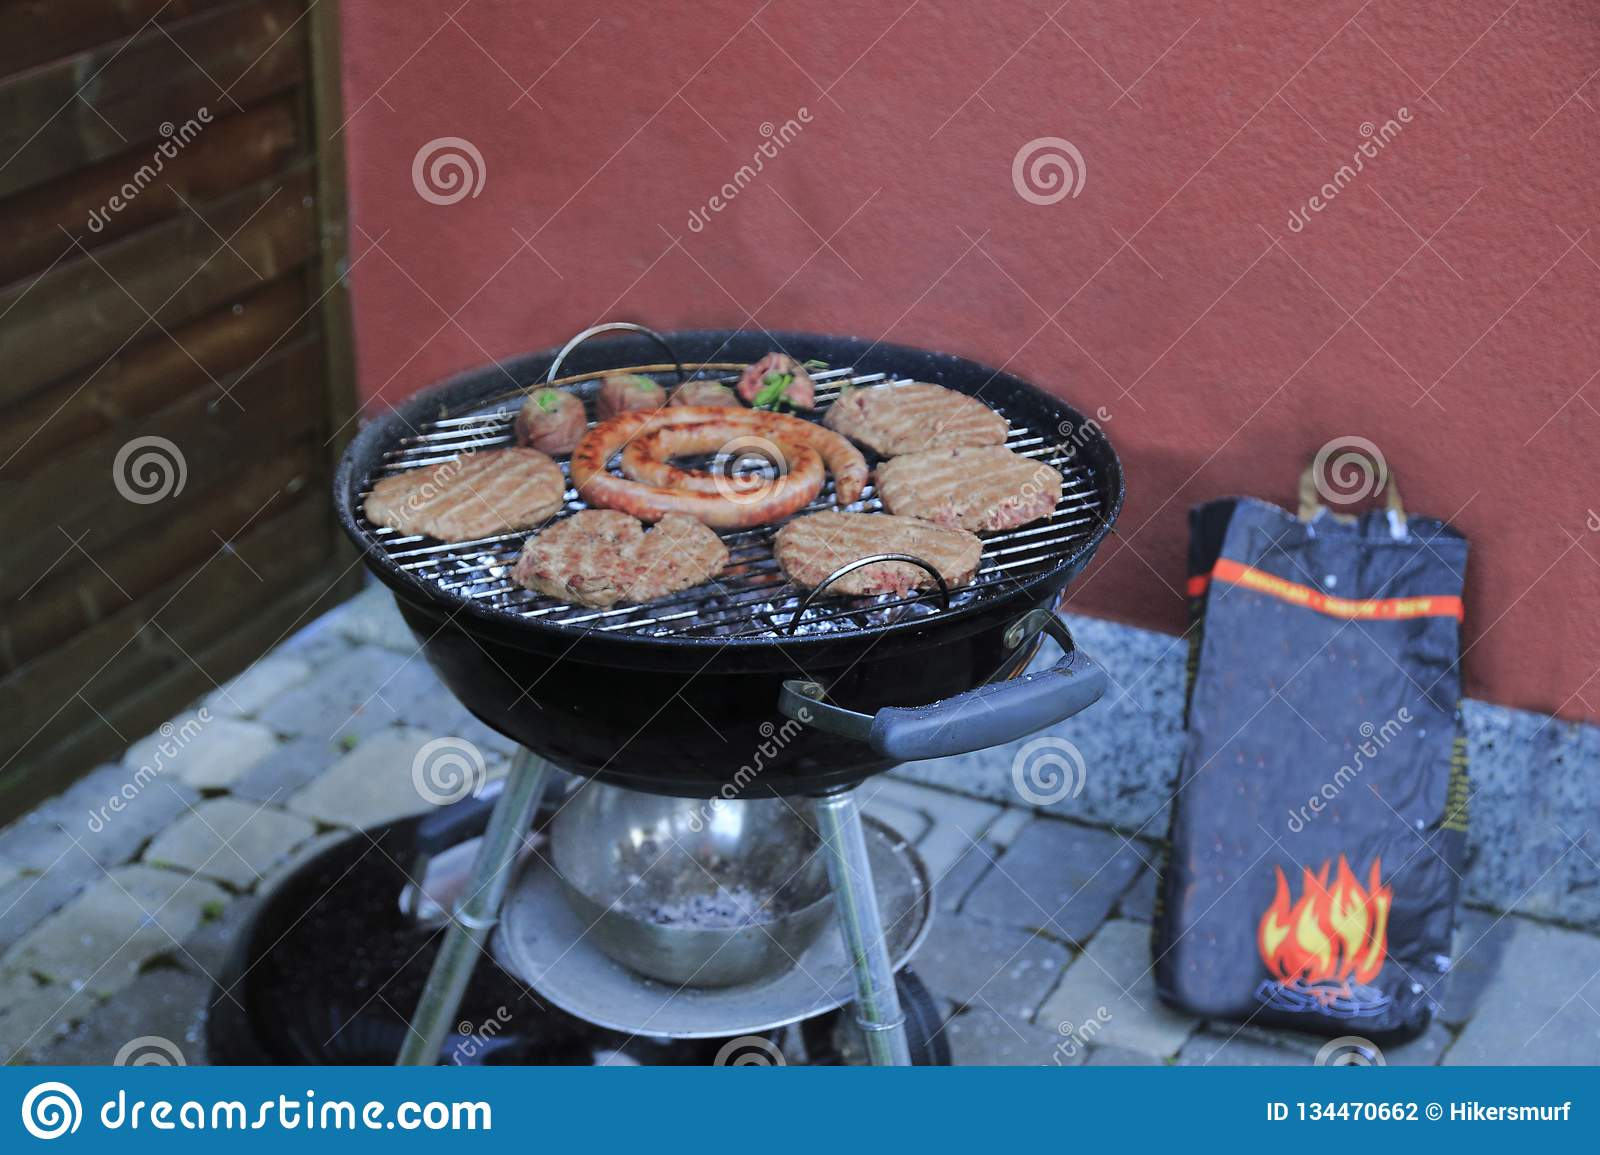 Paddies Burgers Sausages And Meat Rolls Charcoal Grill Stock Photo Image Of Party Dessert 134470662